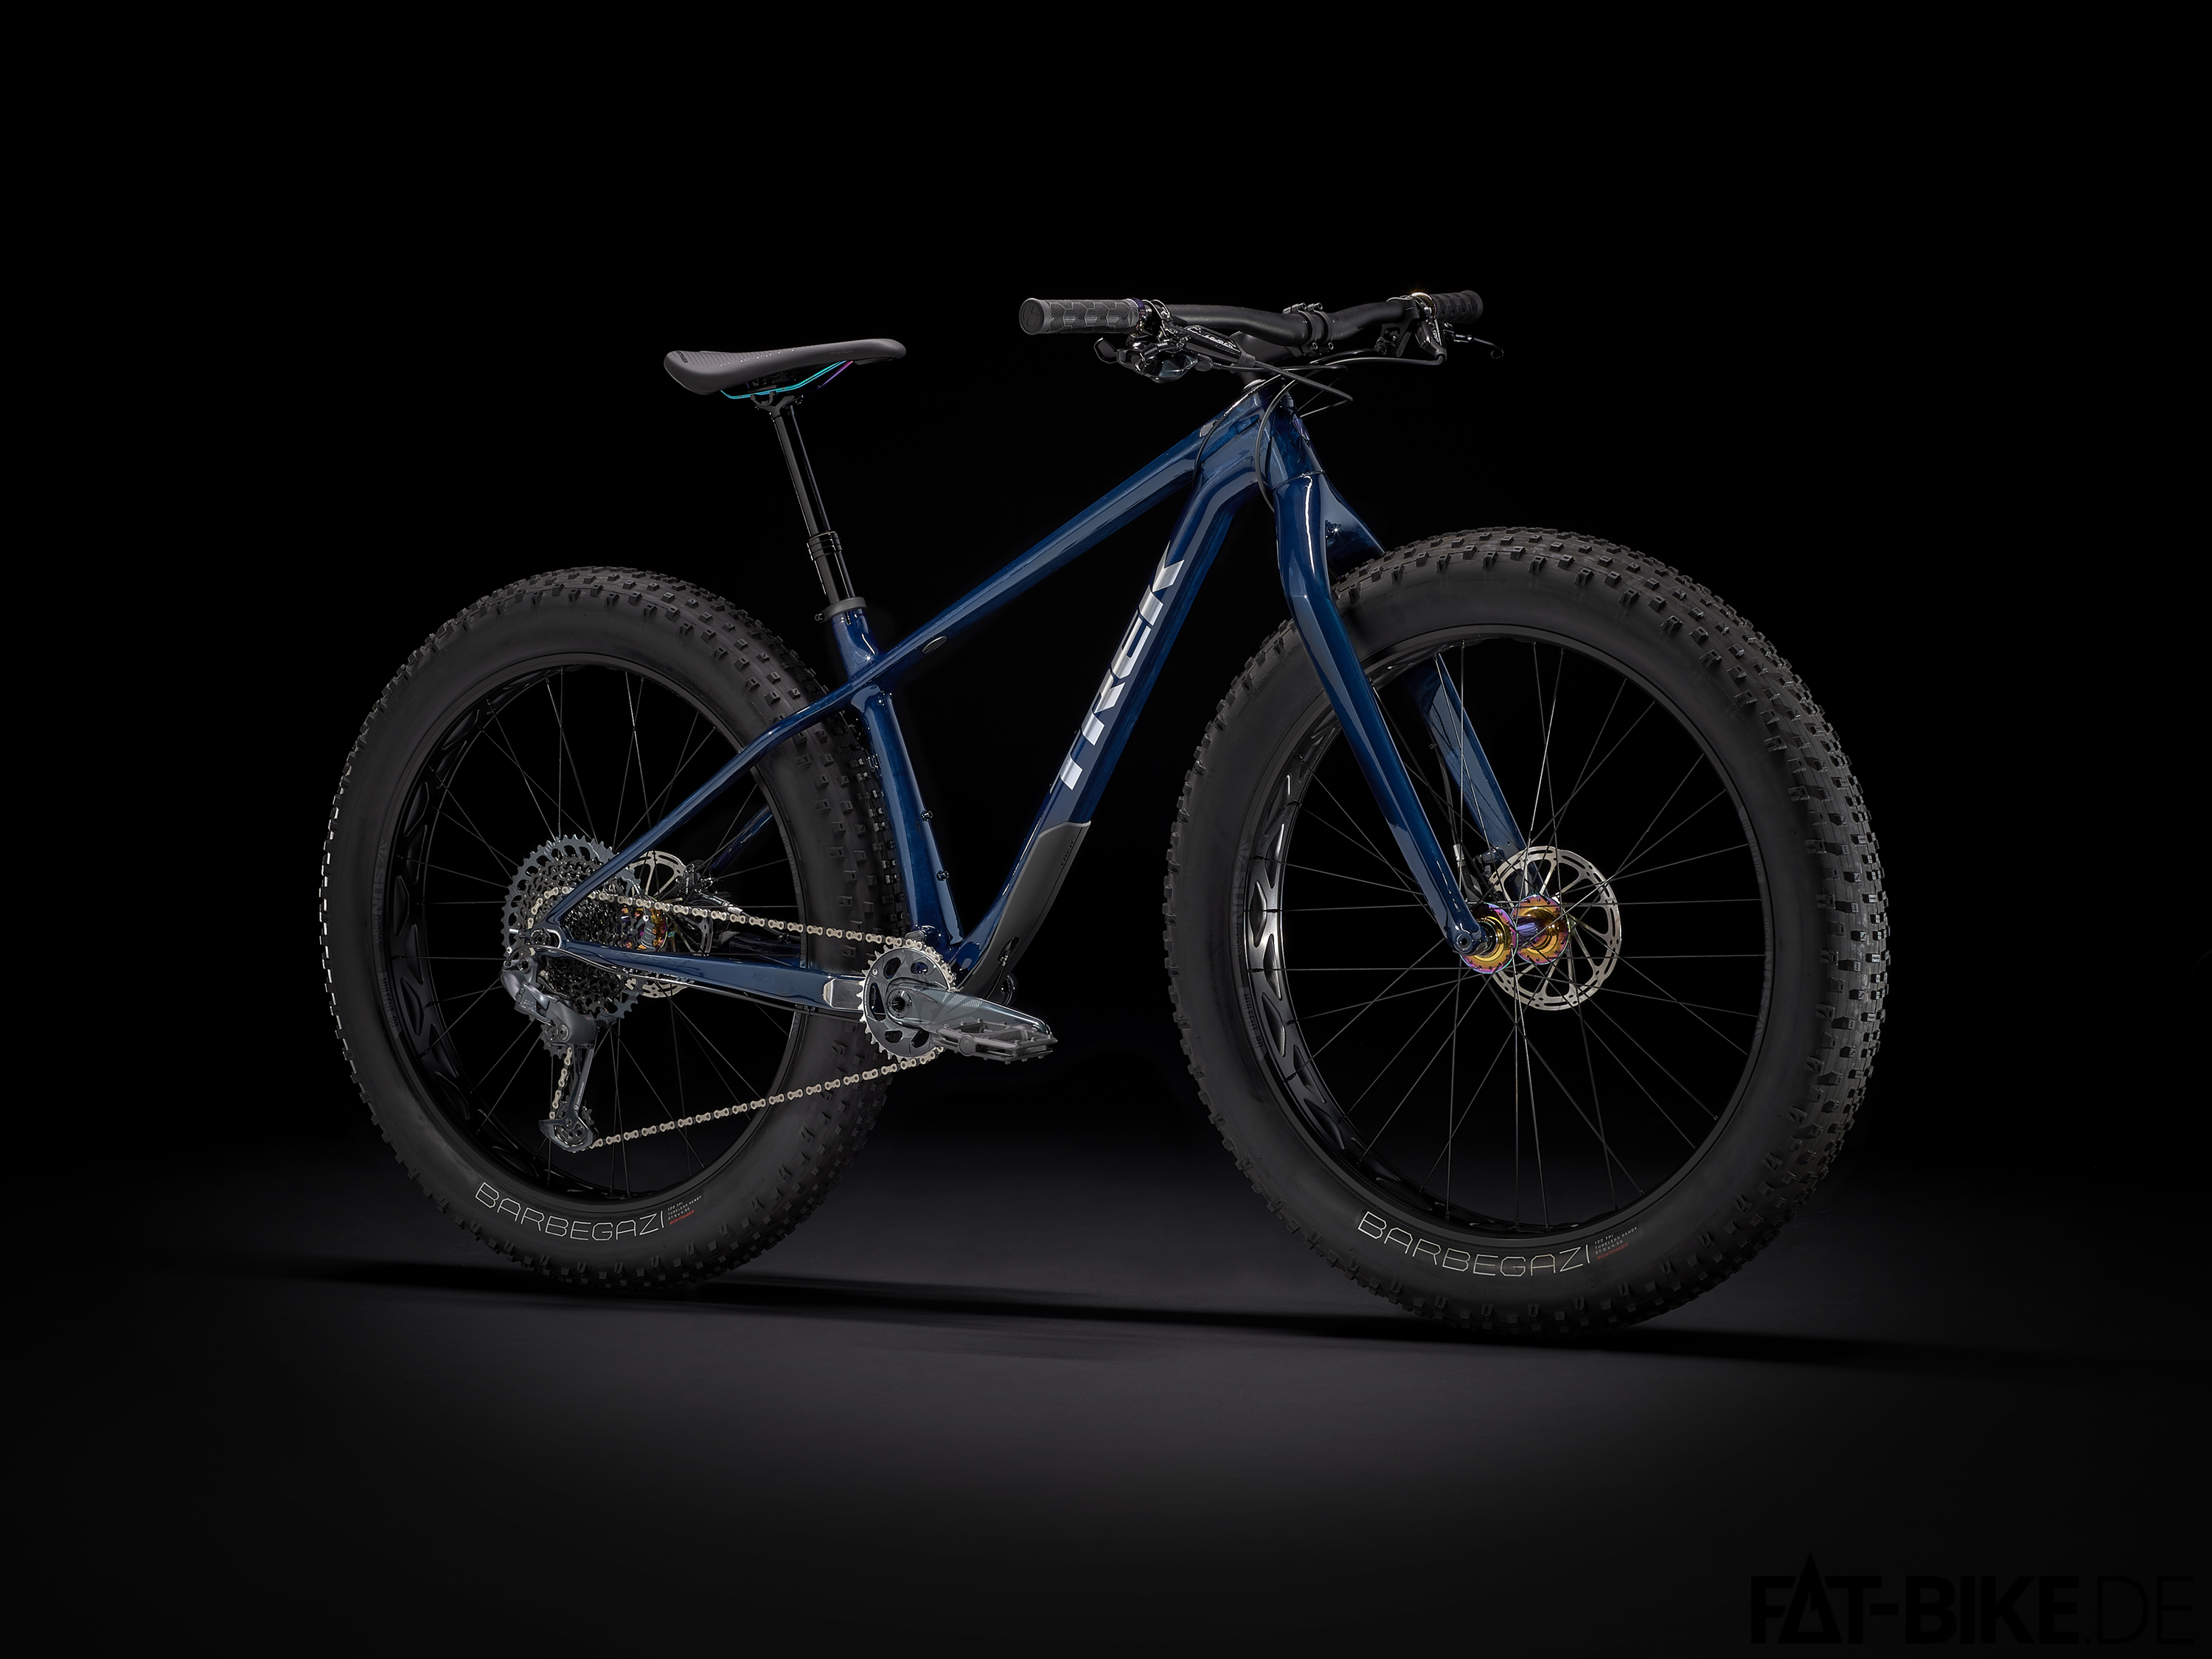 Trek Farley 9.6 Carbon 2021